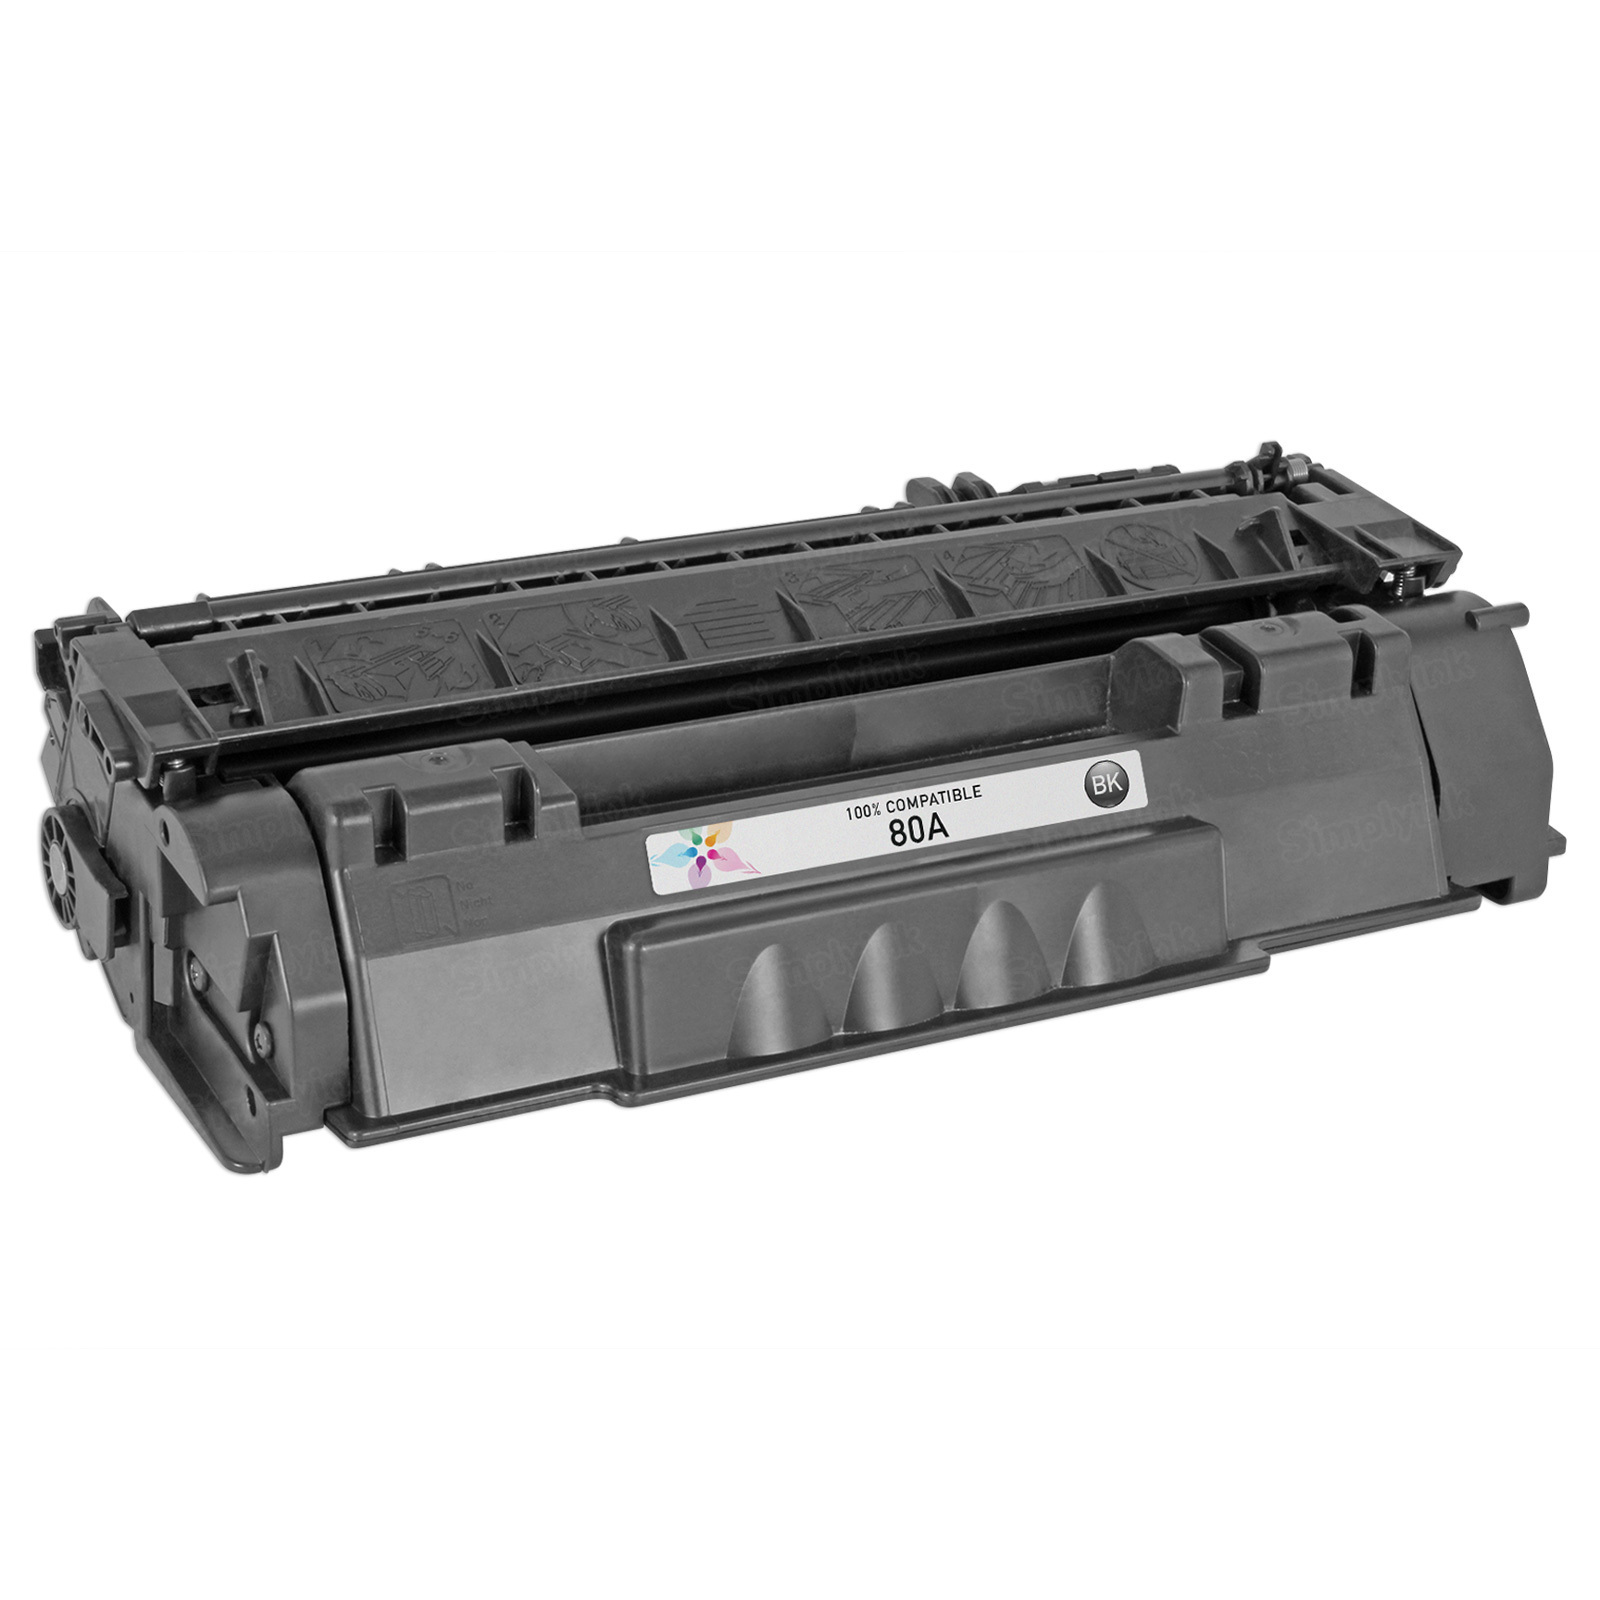 Compatible Brand Black Laser Toner for HP 80A